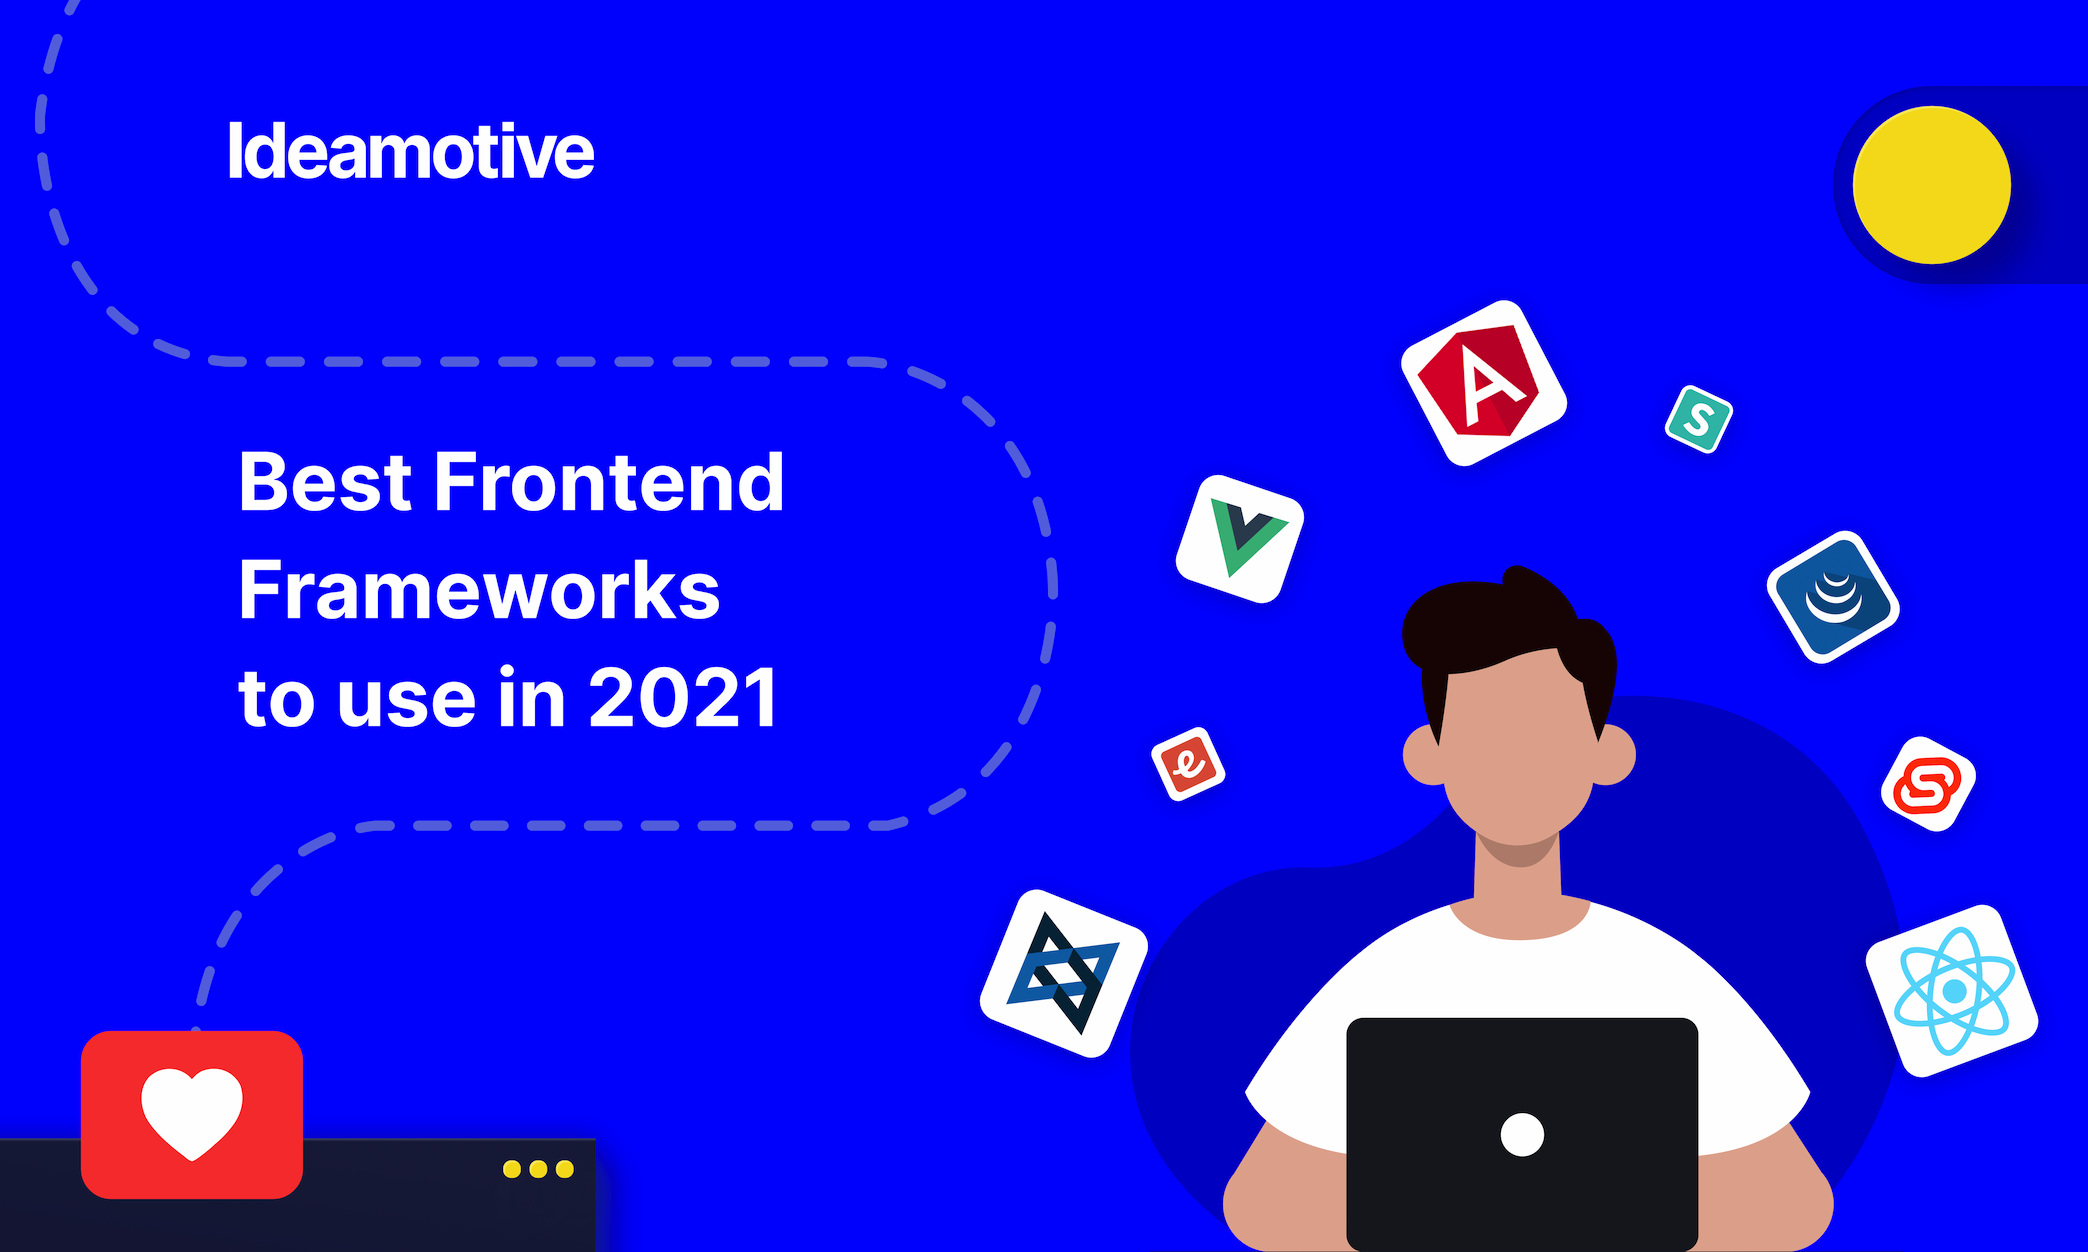 what are the best frontend frameworks to use